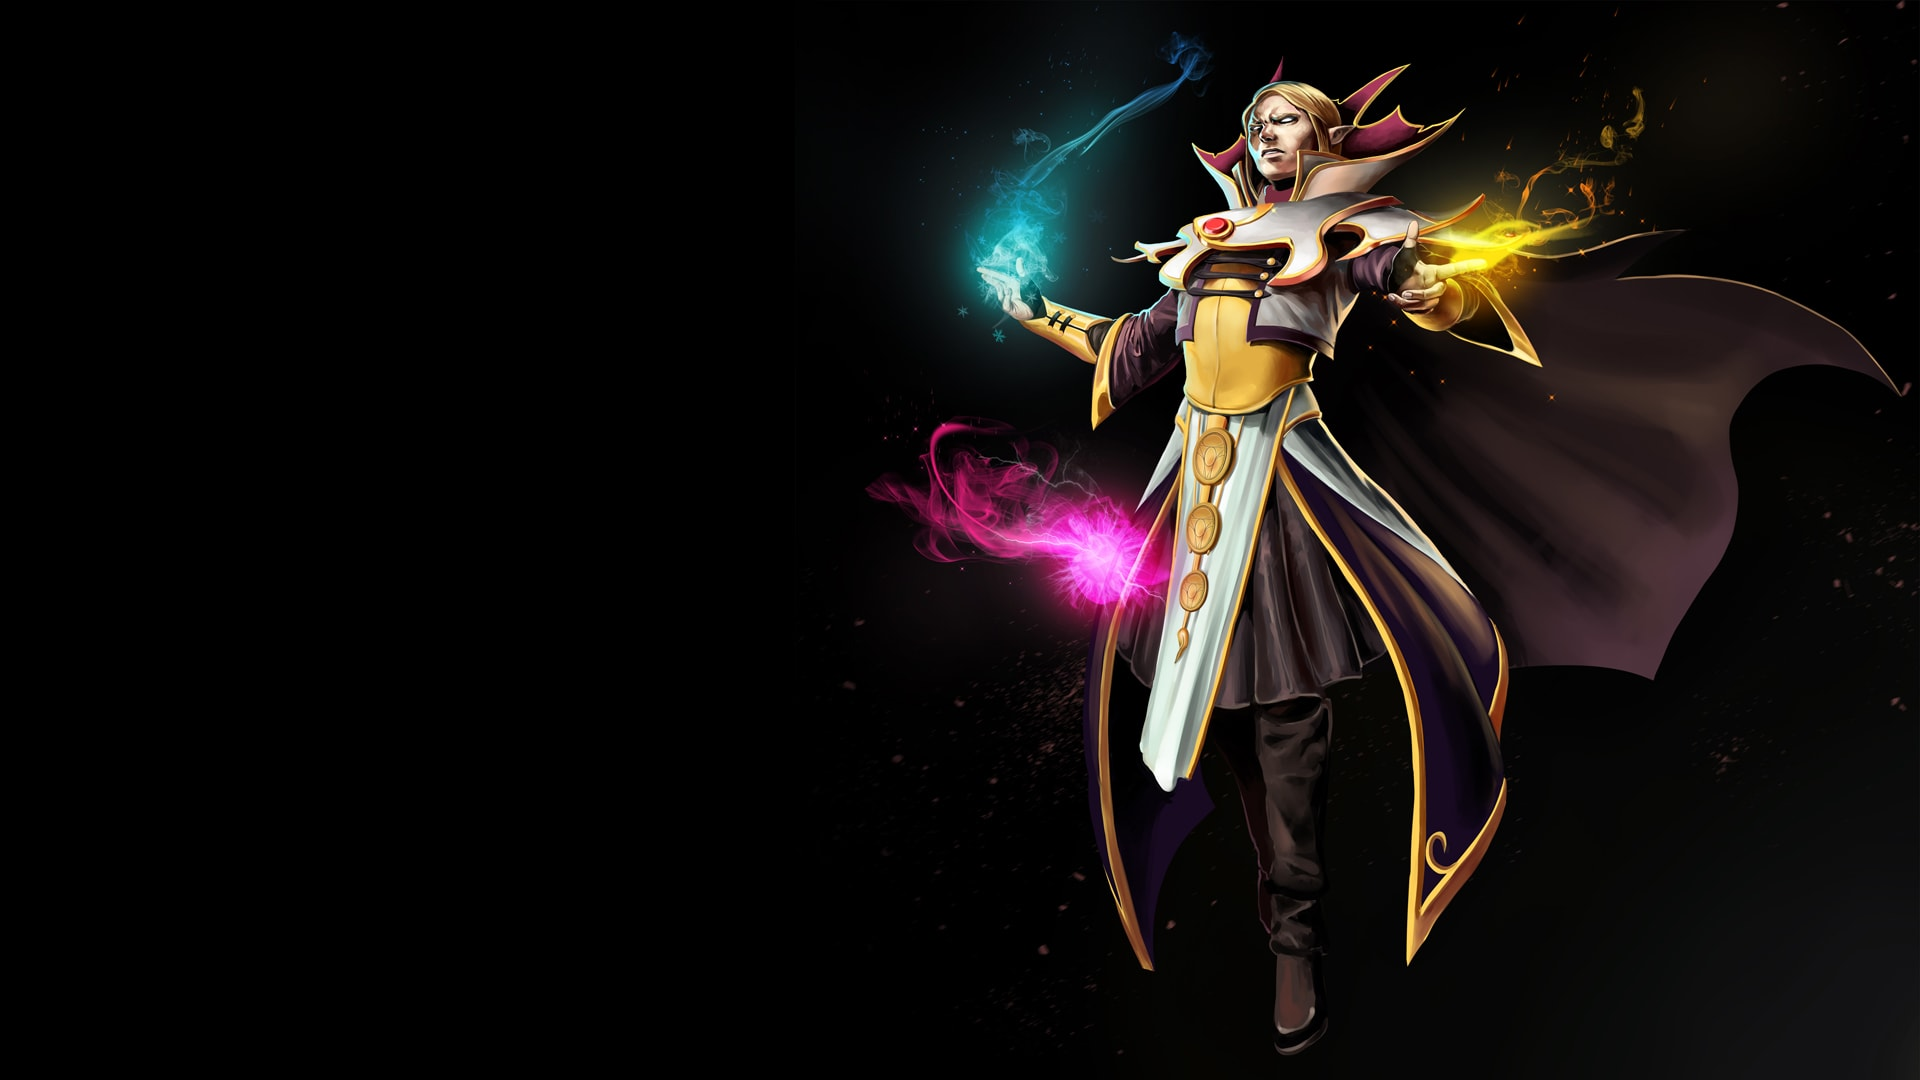 Dota2 Invoker Hd Wallpapers 7wallpapers Net